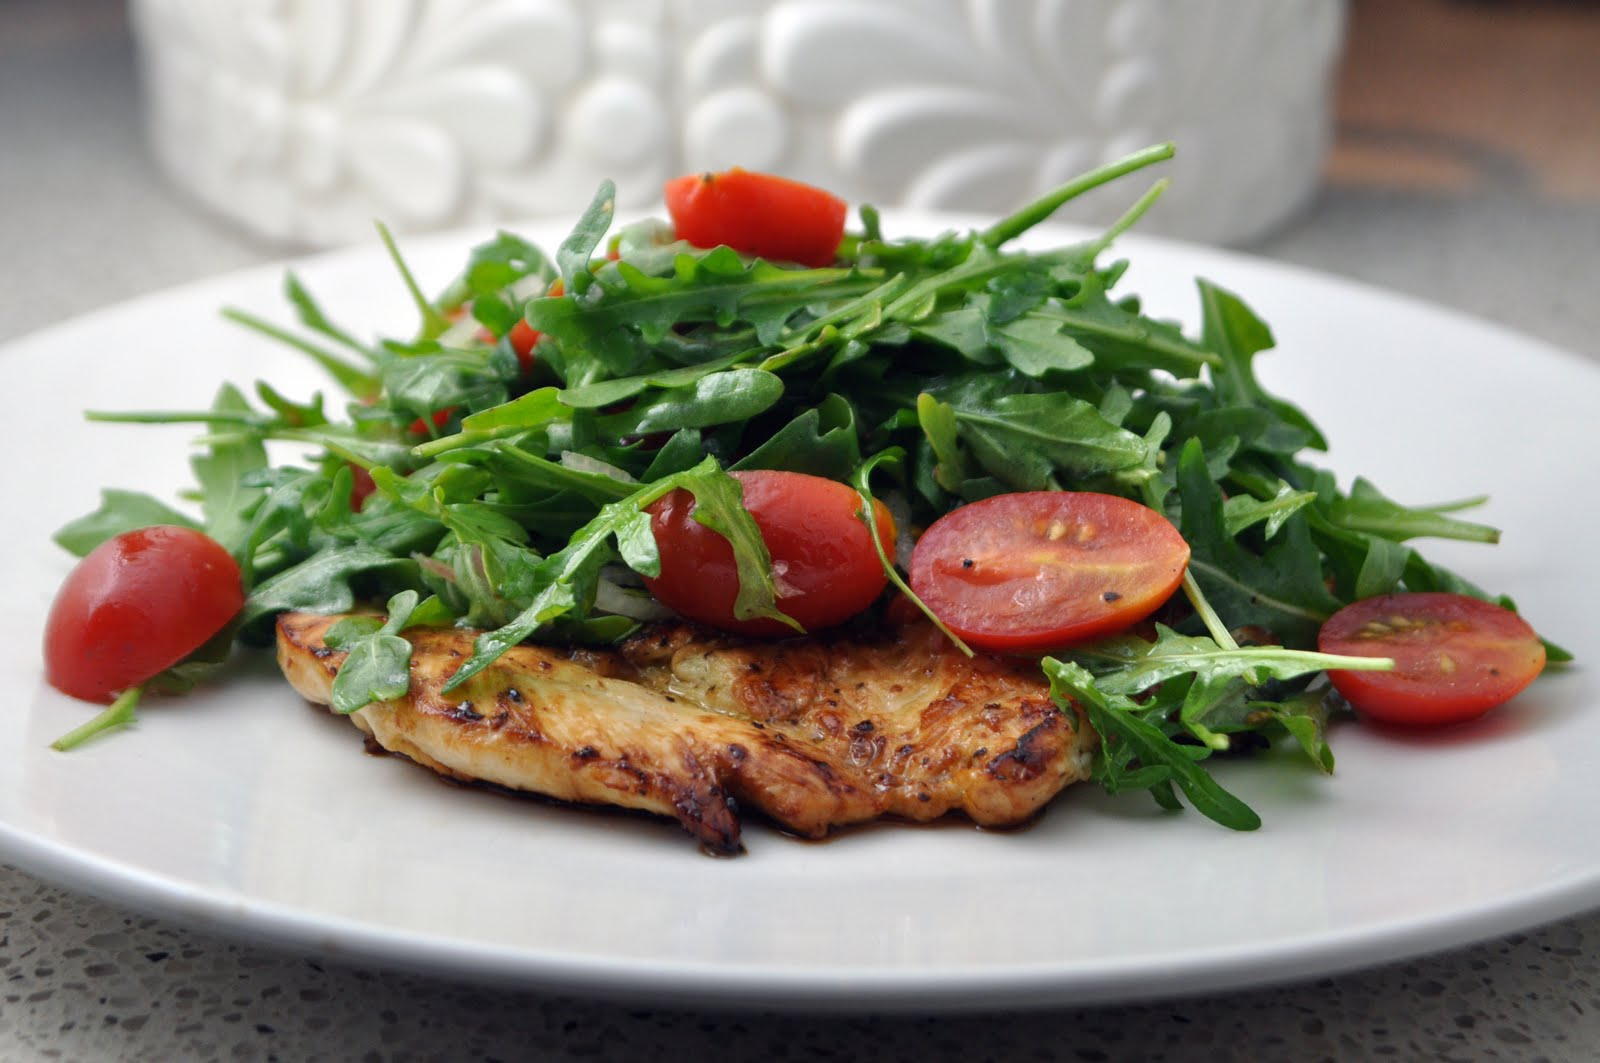 Impeccable Taste: Chicken Paillard with Arugula & Tomato Salad